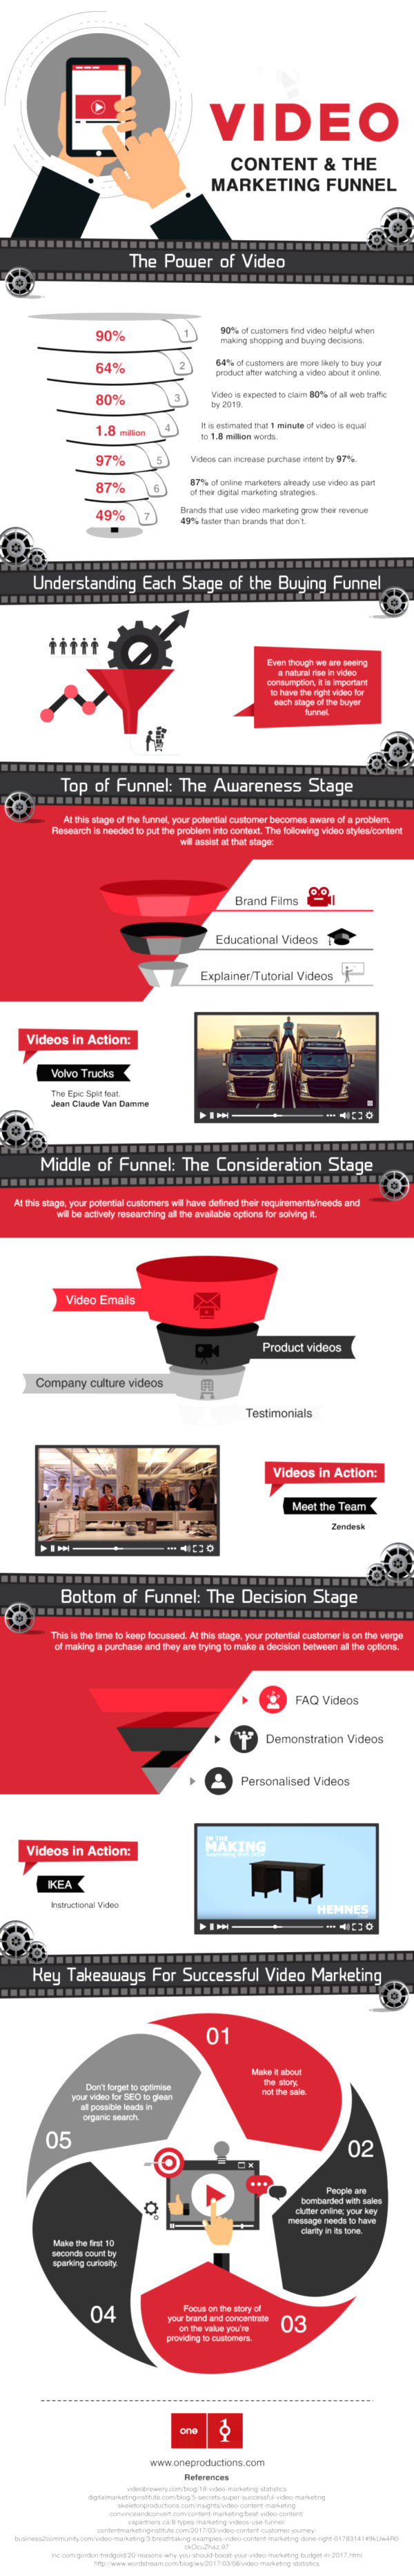 Video Content & Its Role in the Marketing Funnel 1